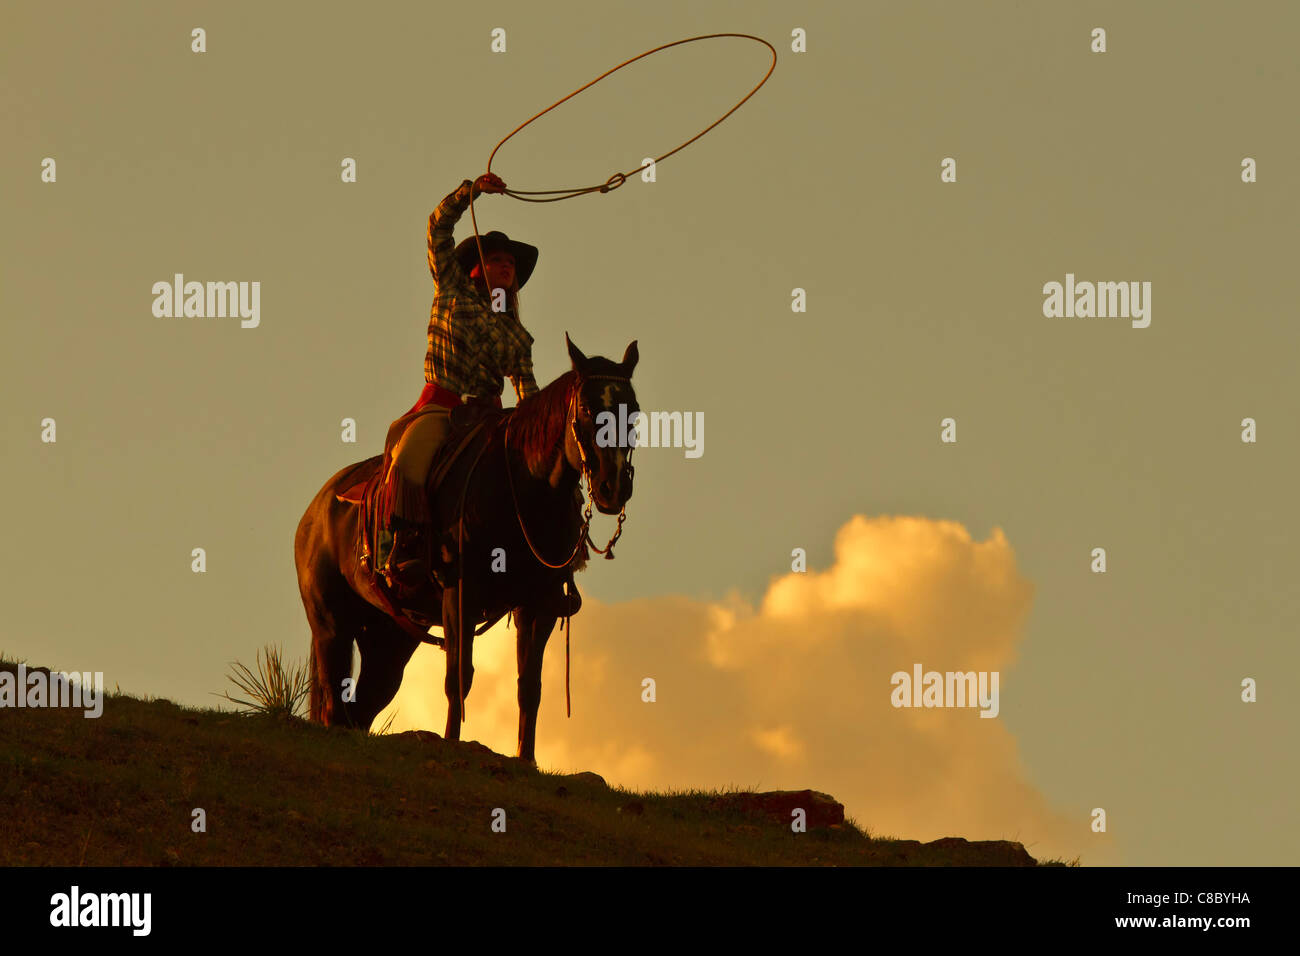 Cowgirl spinning a lasso against a dramatic sky in partial silhouette - Stock Image